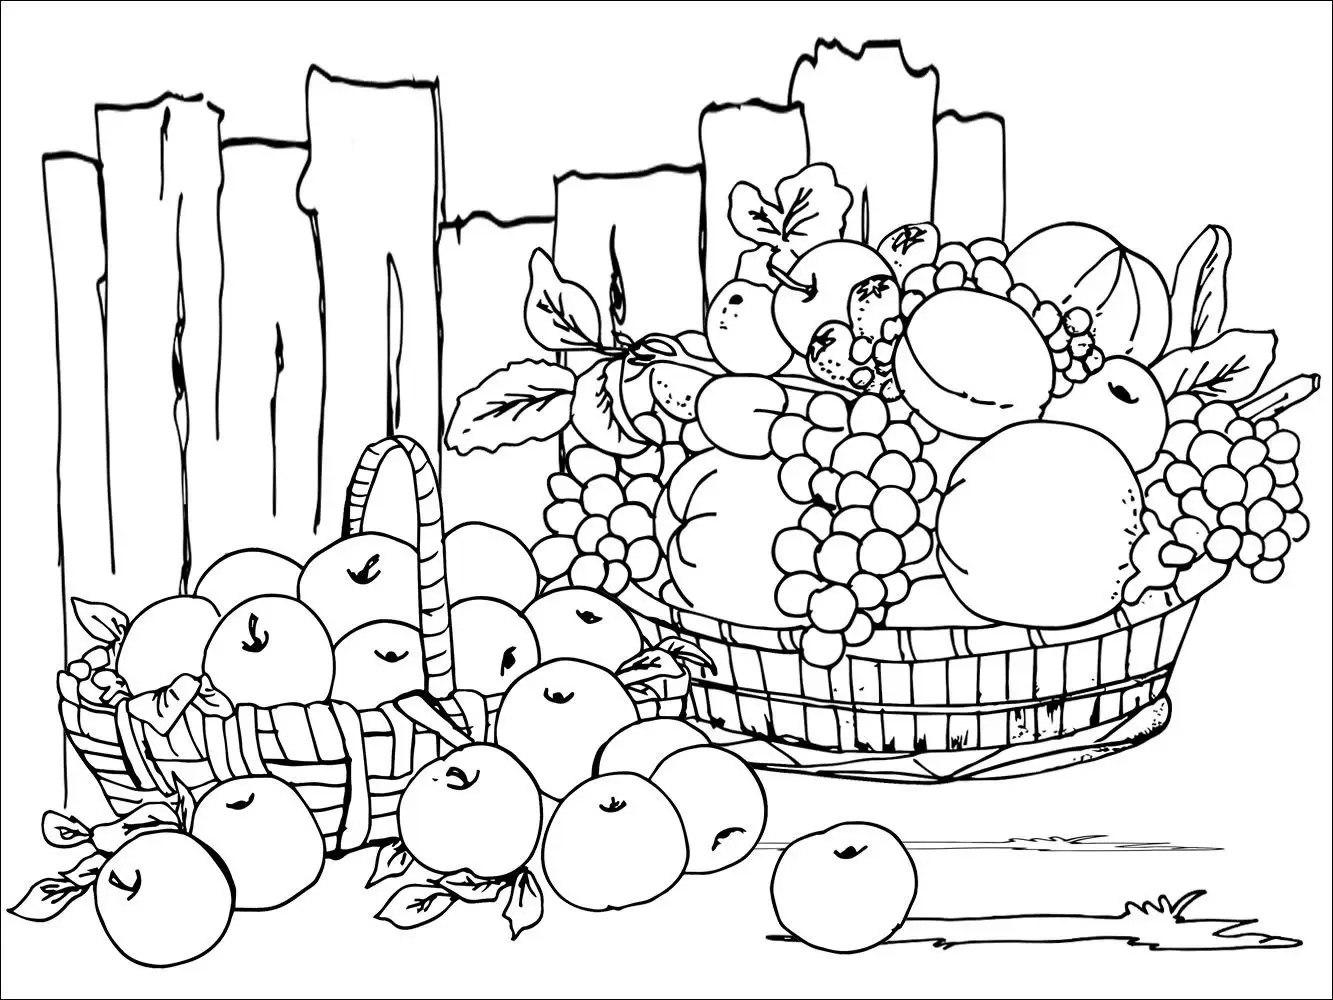 pyonor, Author at Free coloring pages printable for kids